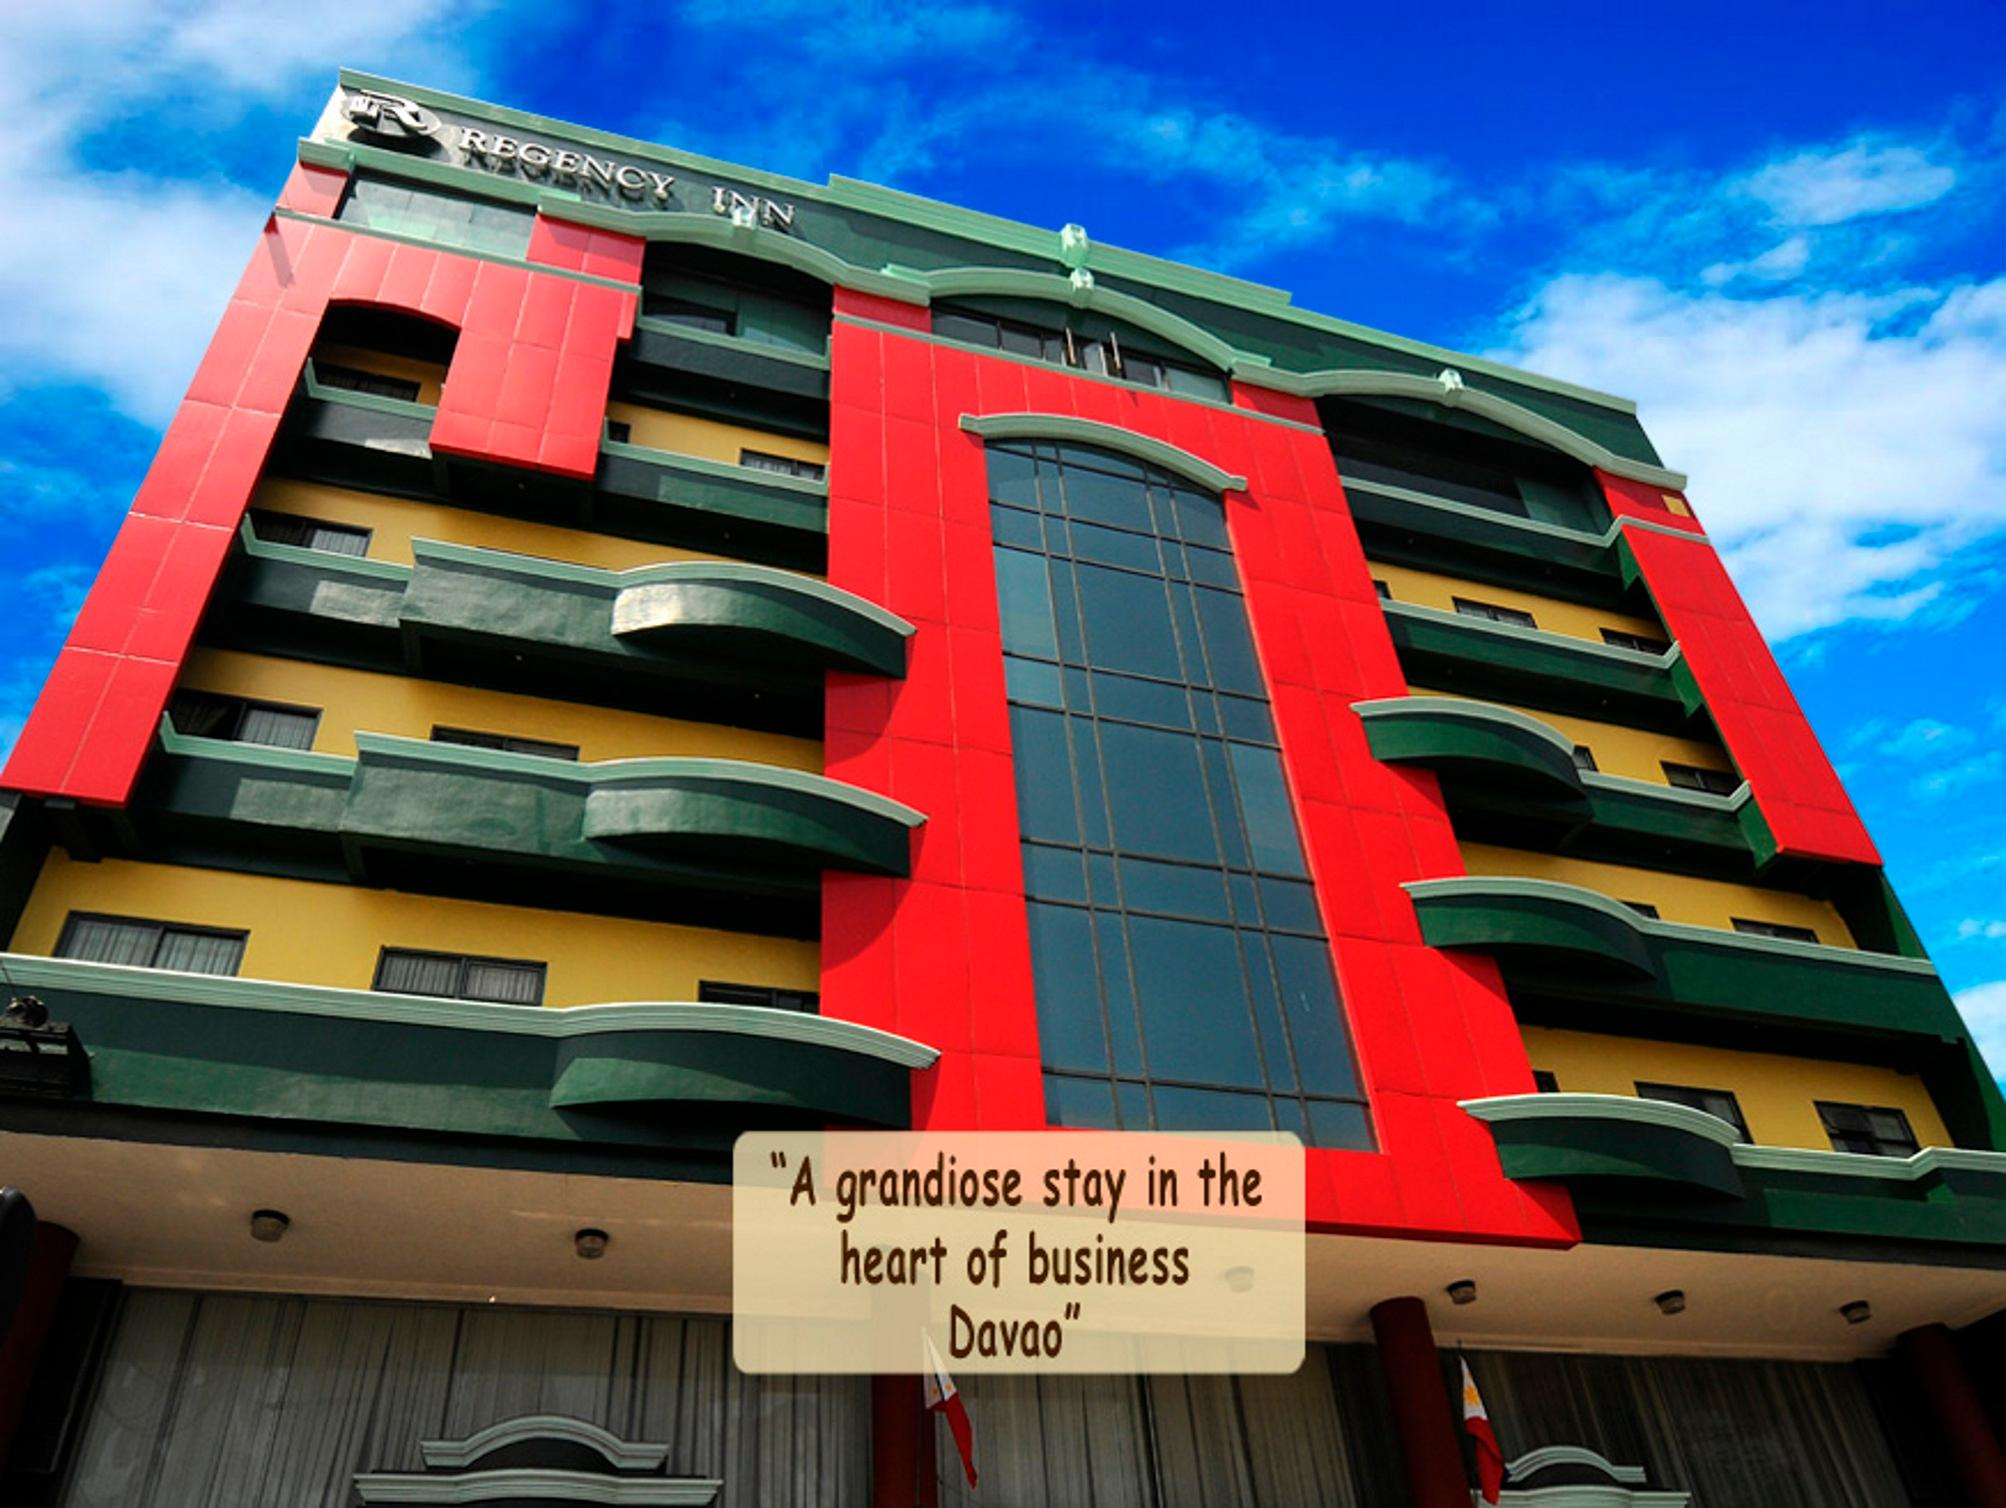 Regency Inn Hotel Davao Room Rates